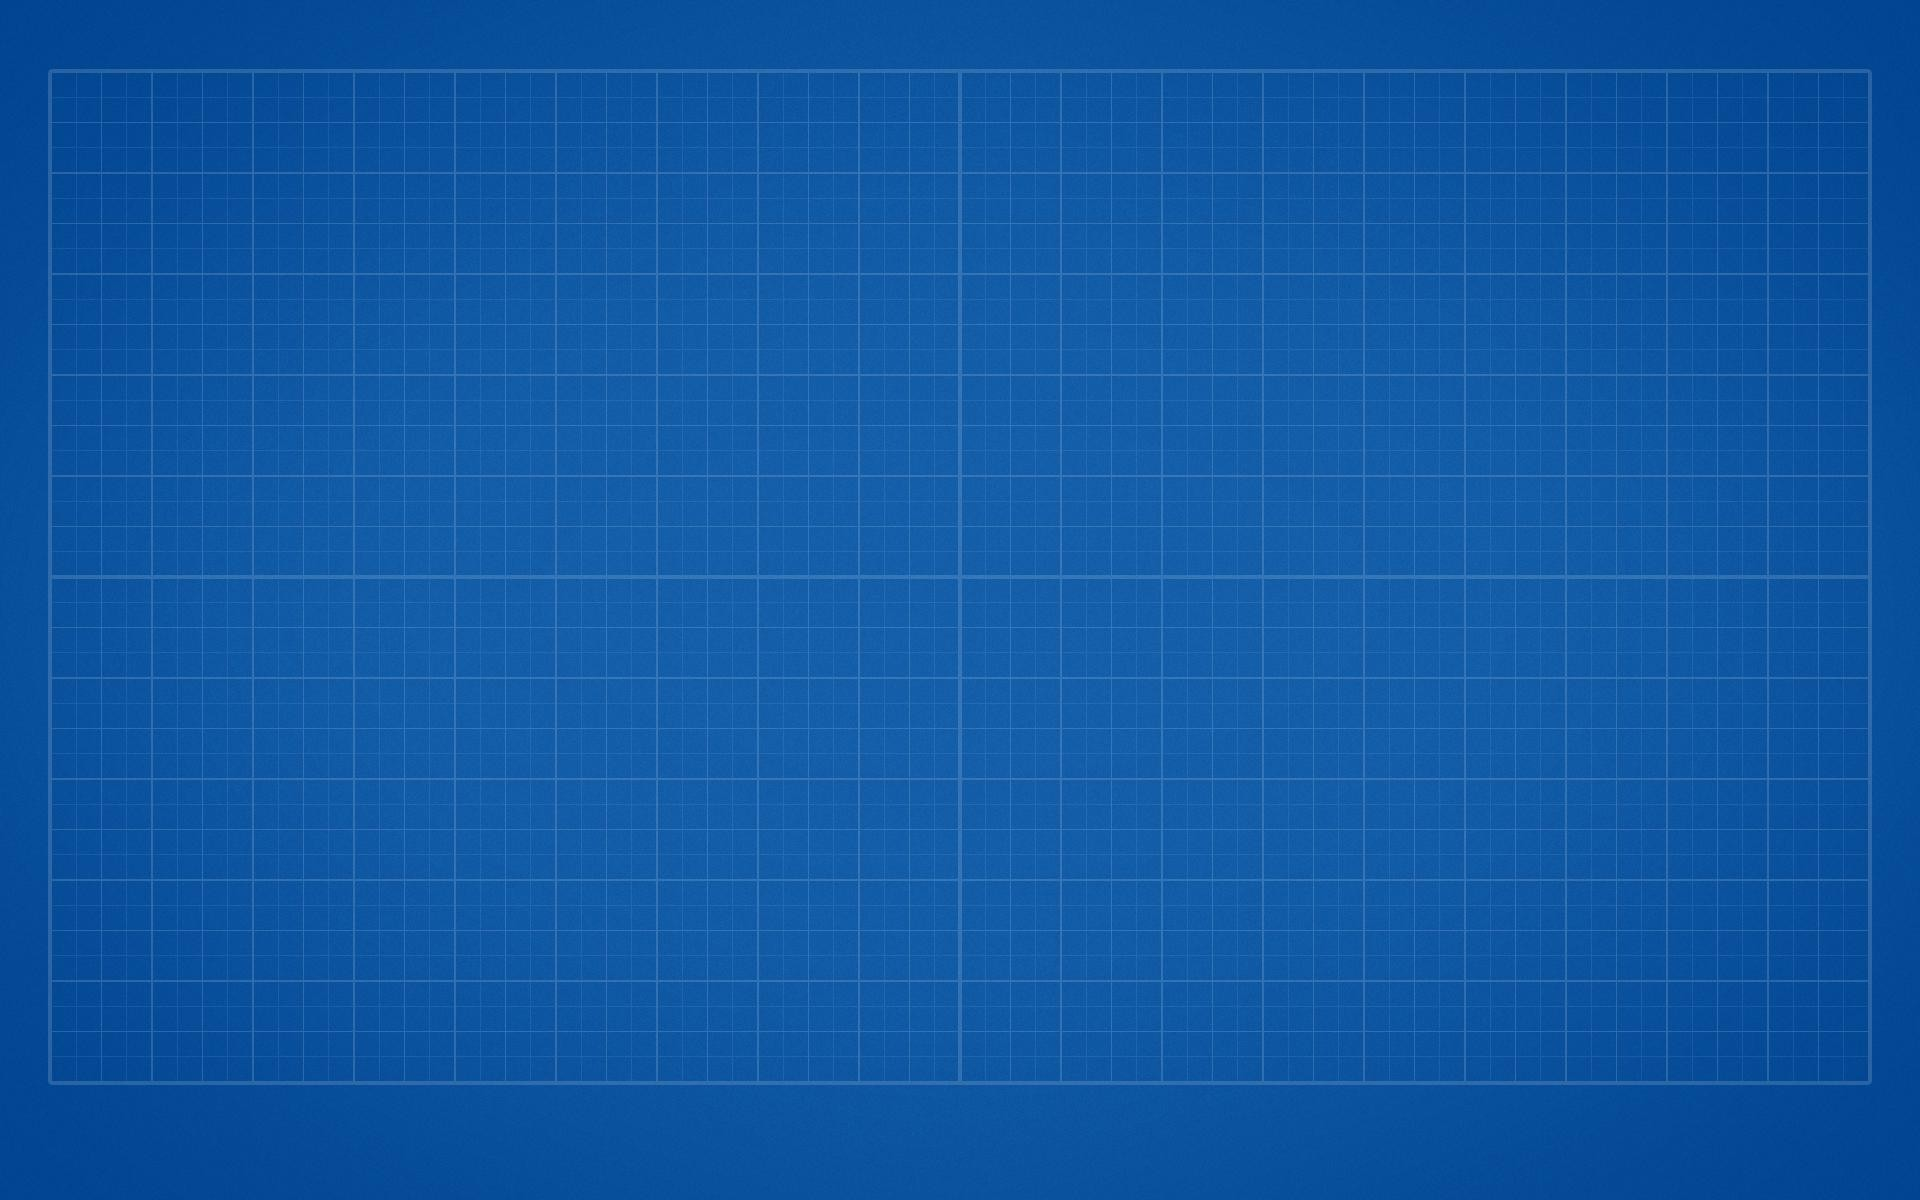 Blueprint background download free cool hd backgrounds for Blueprint paper size